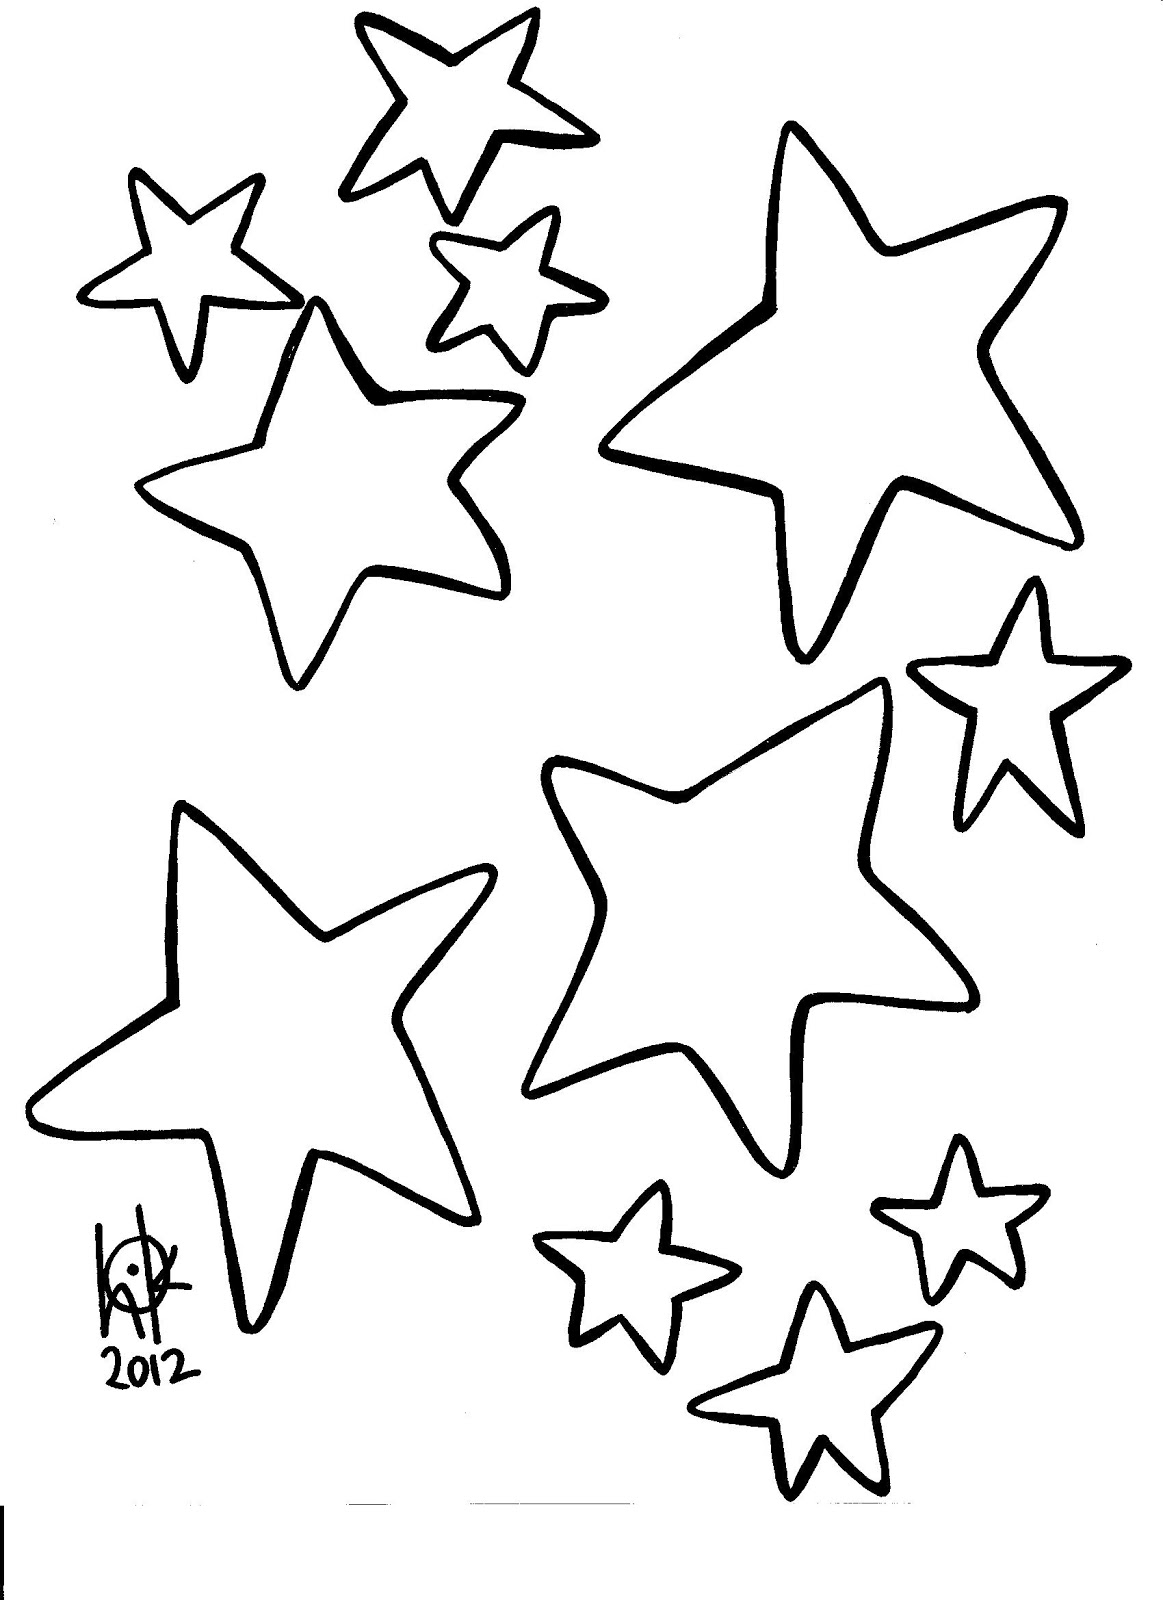 star picture to color star coloring pages free to print coloringstar color to picture star